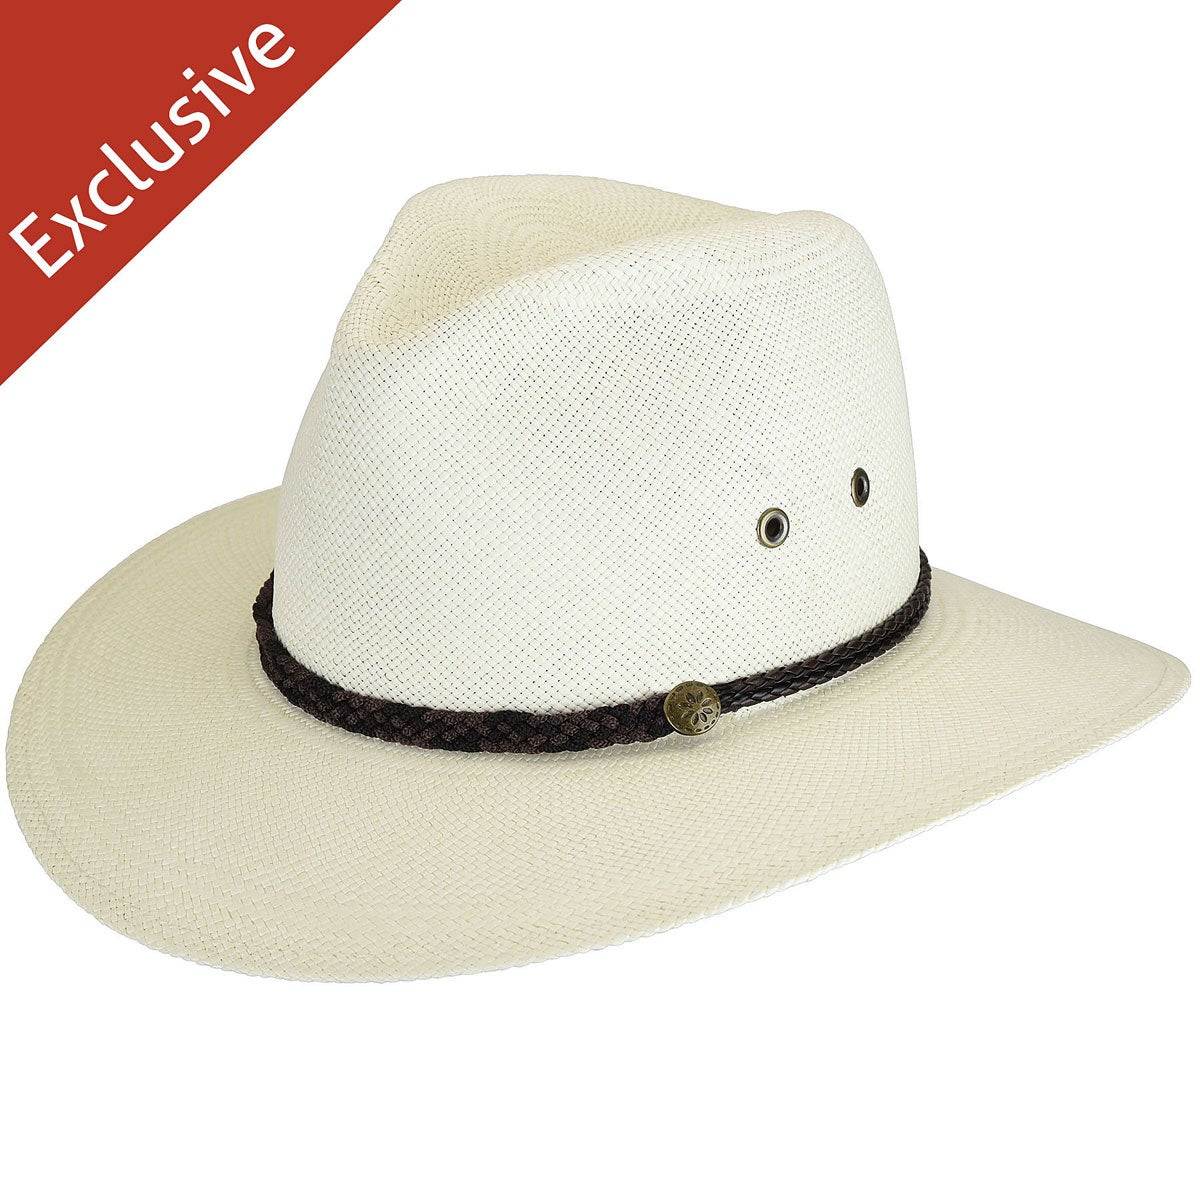 Tim M. Outback - Exclusive - Ivory/M